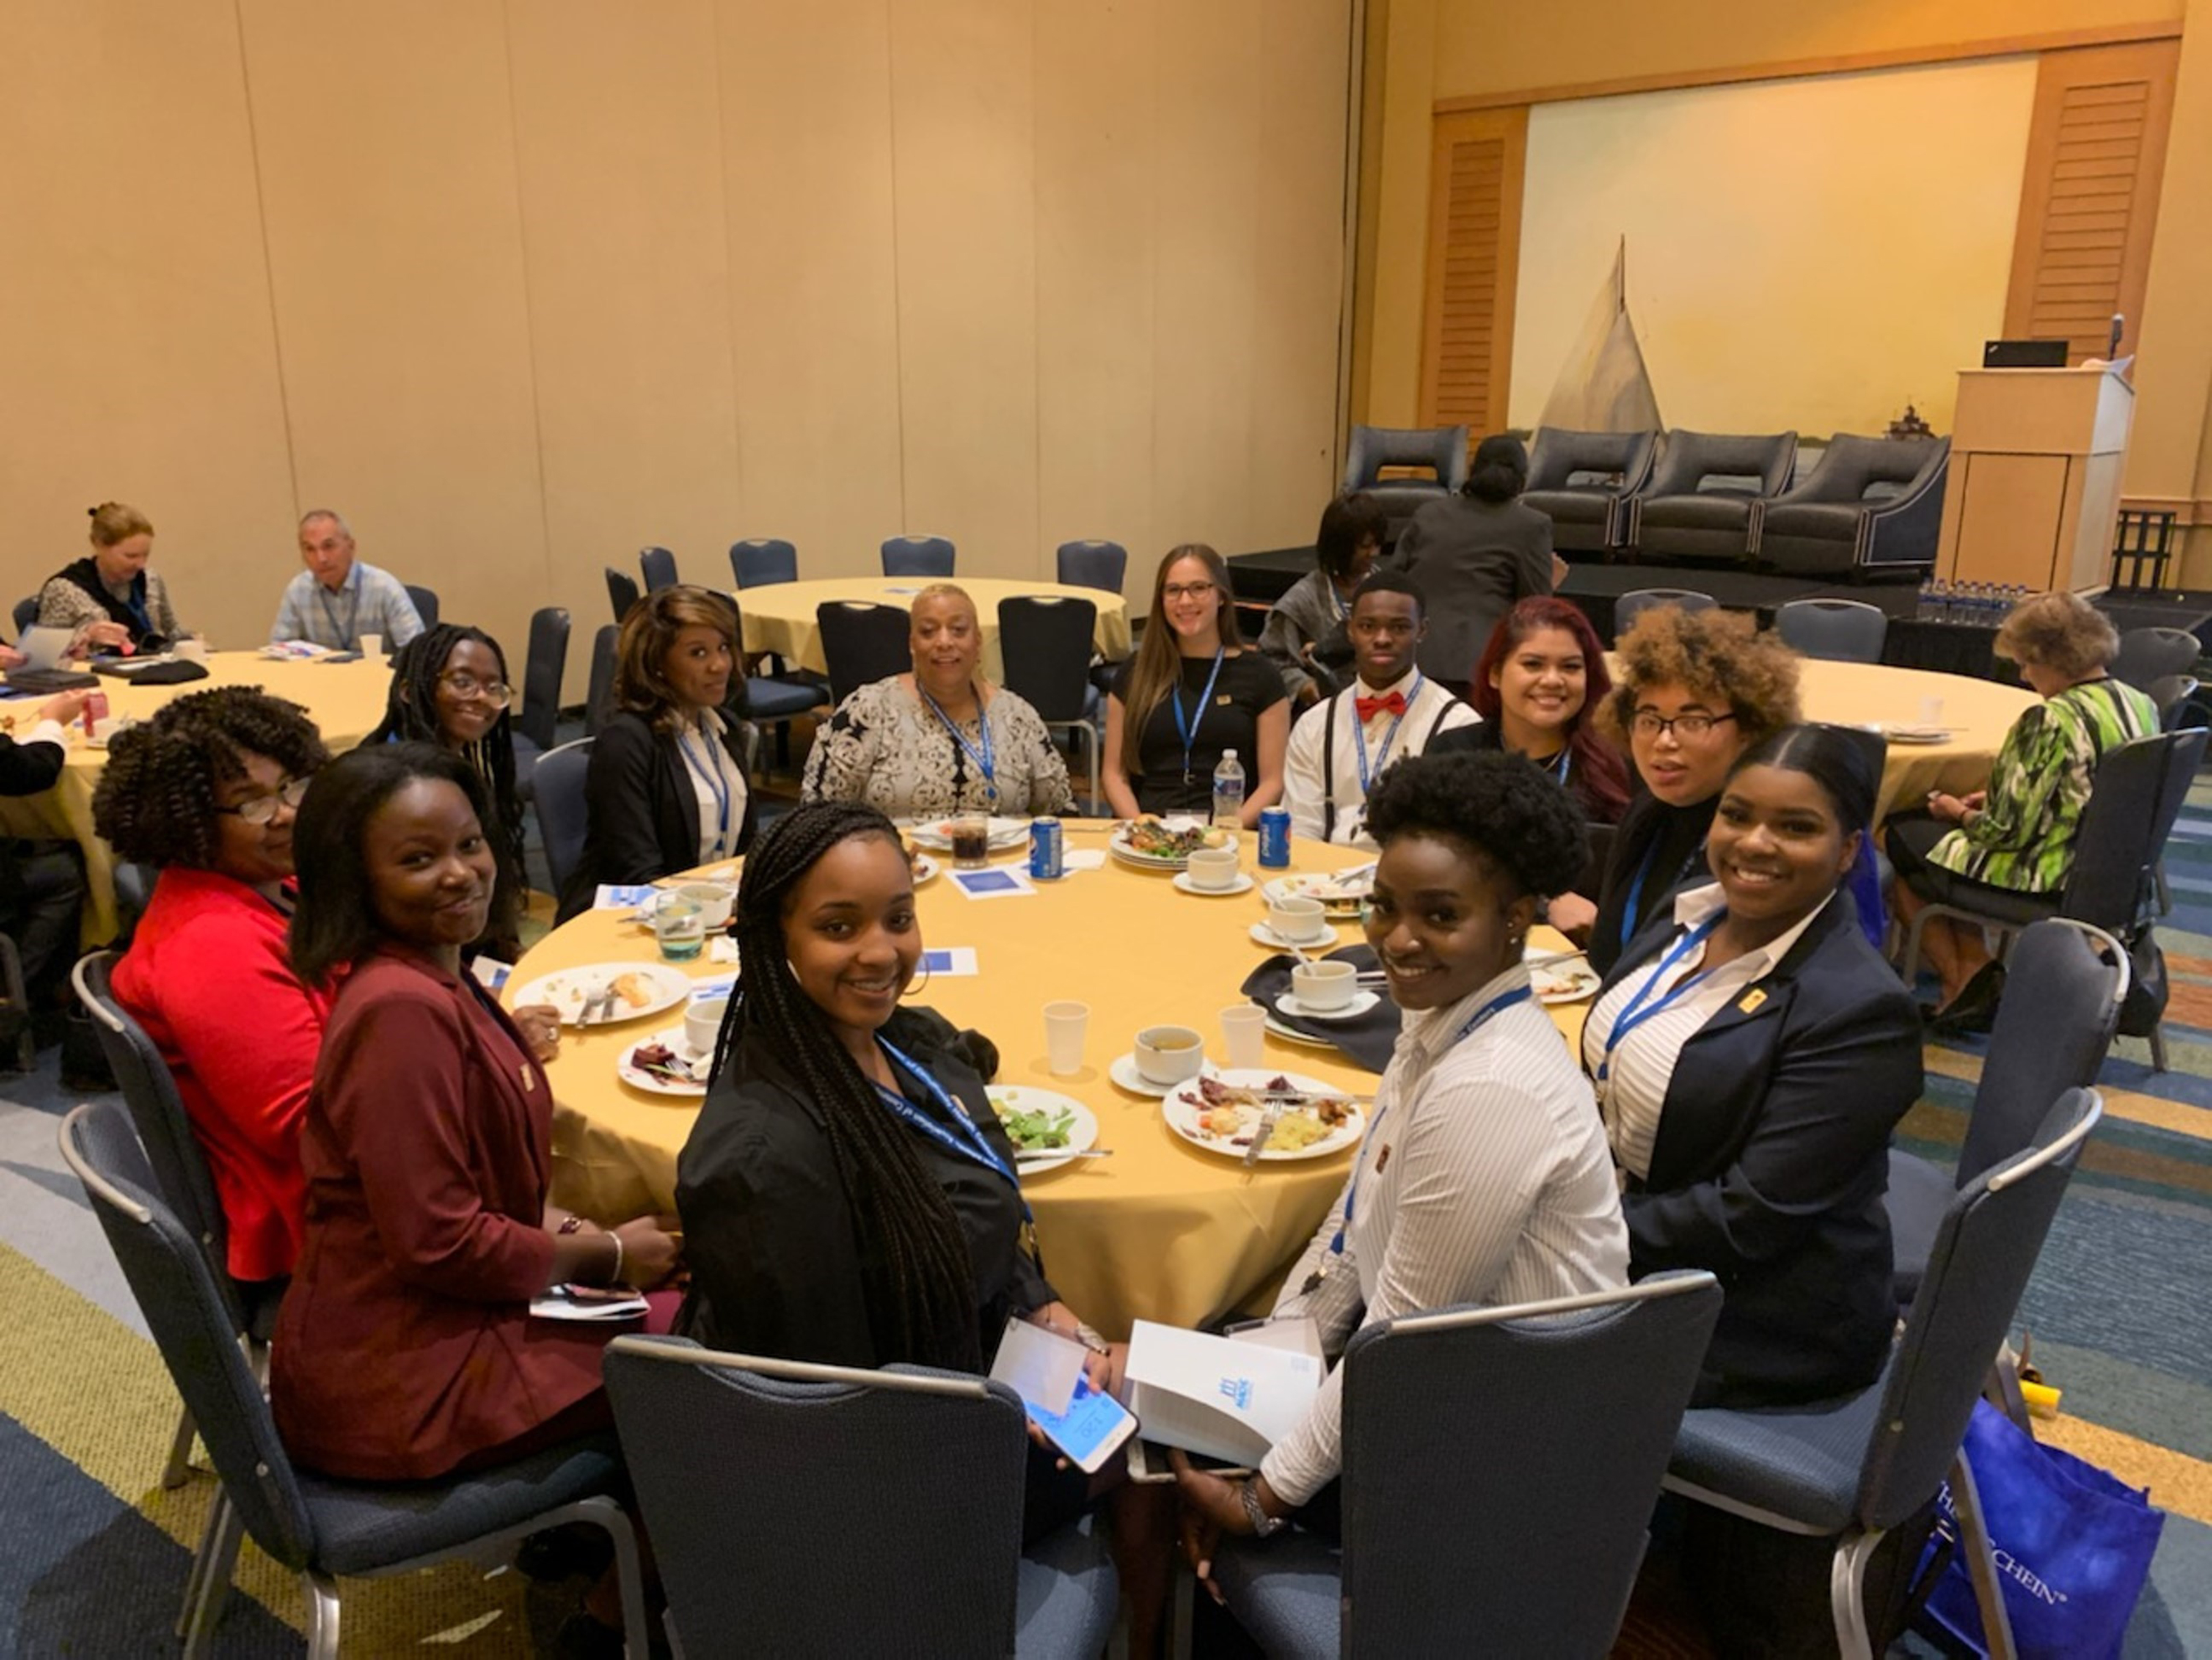 A group of Delaware State University students attended the One Voice Together Conference held for community health professionals on Sept. 30 in Chesapeake, Md.